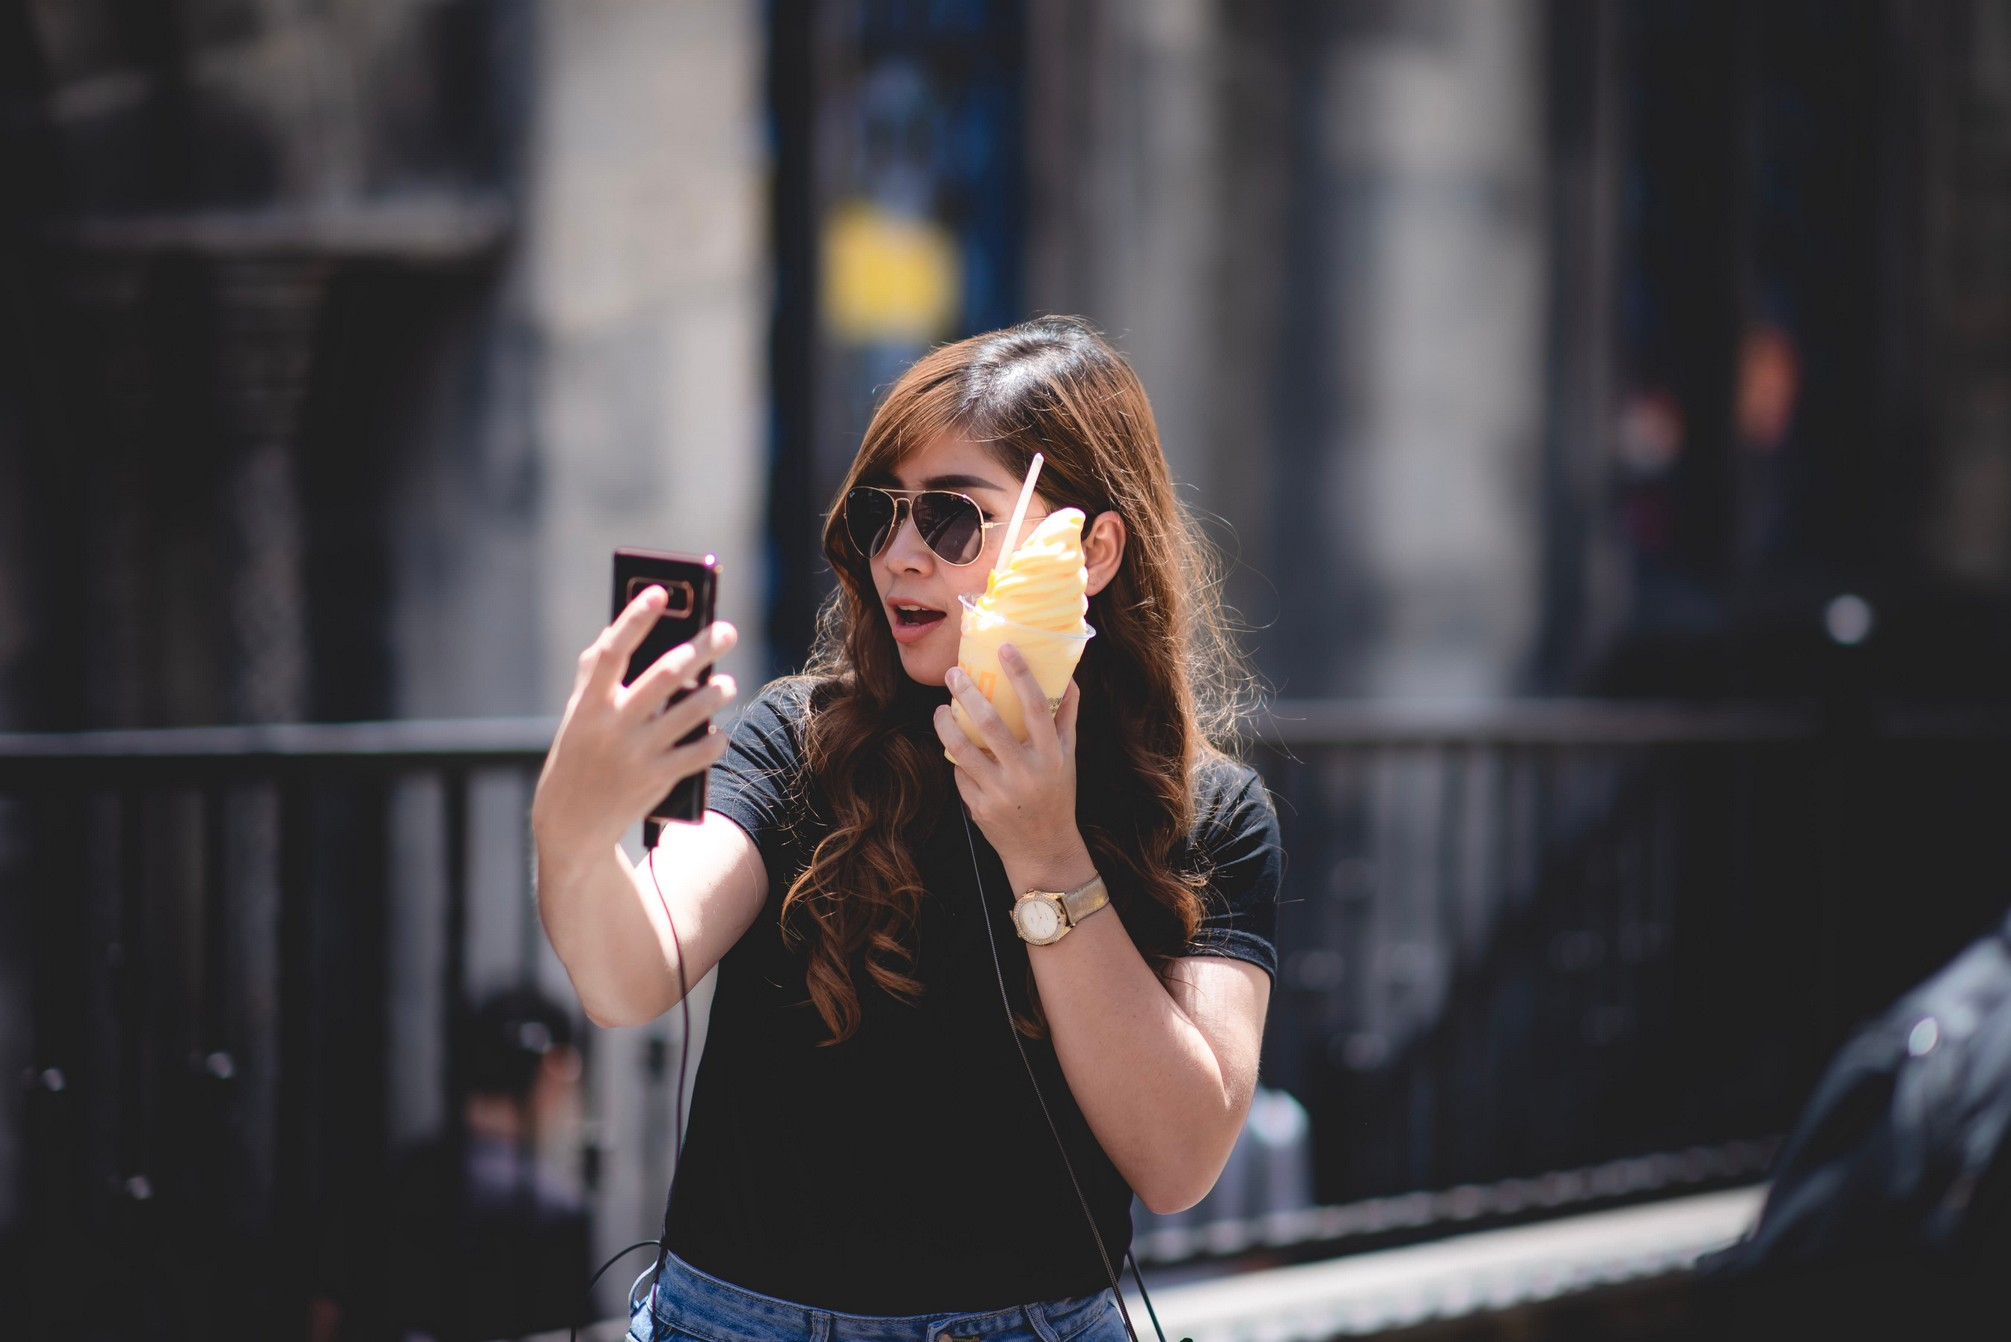 woman looking shocked as she holds her phone in the street.